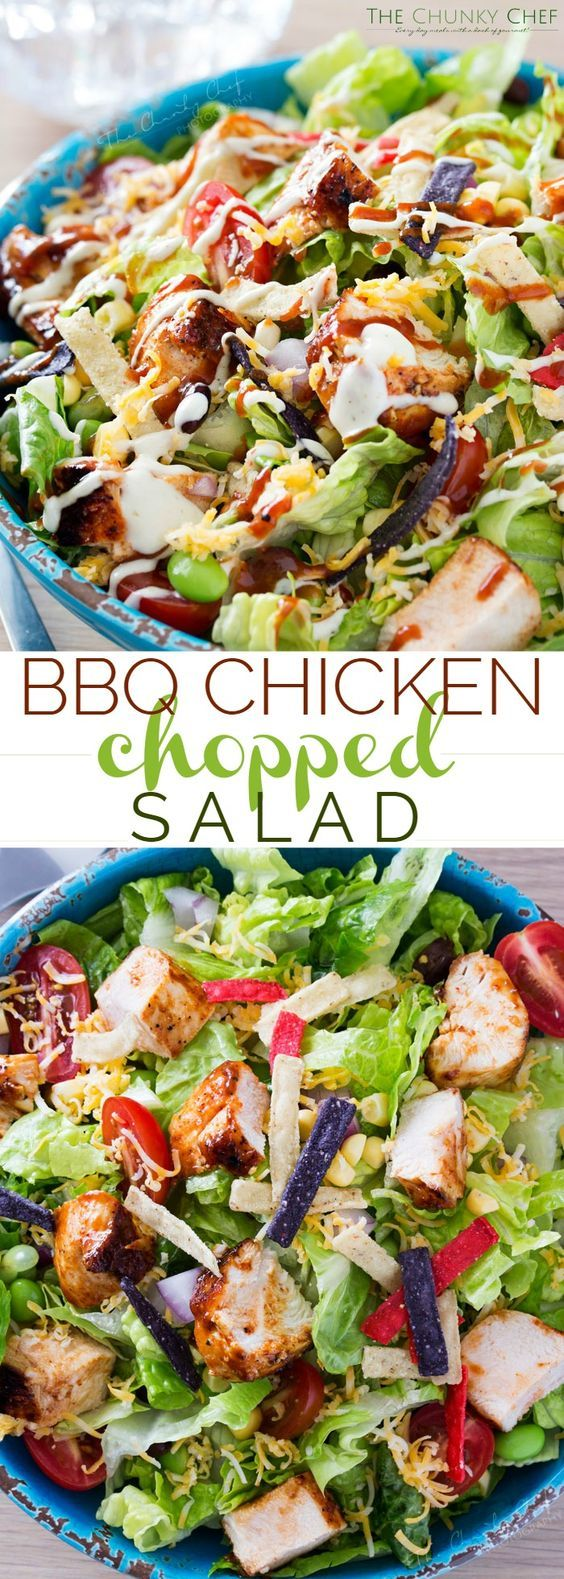 BBQ Chicken Salad | This fresh and crisp bbq chicken salad is packed with veggies, tender grilled chicken, and topped with bbq sauce and a green chile ranch dressing! | http://thechunkychef.com #SauceMaster @stubbsbbqsauce